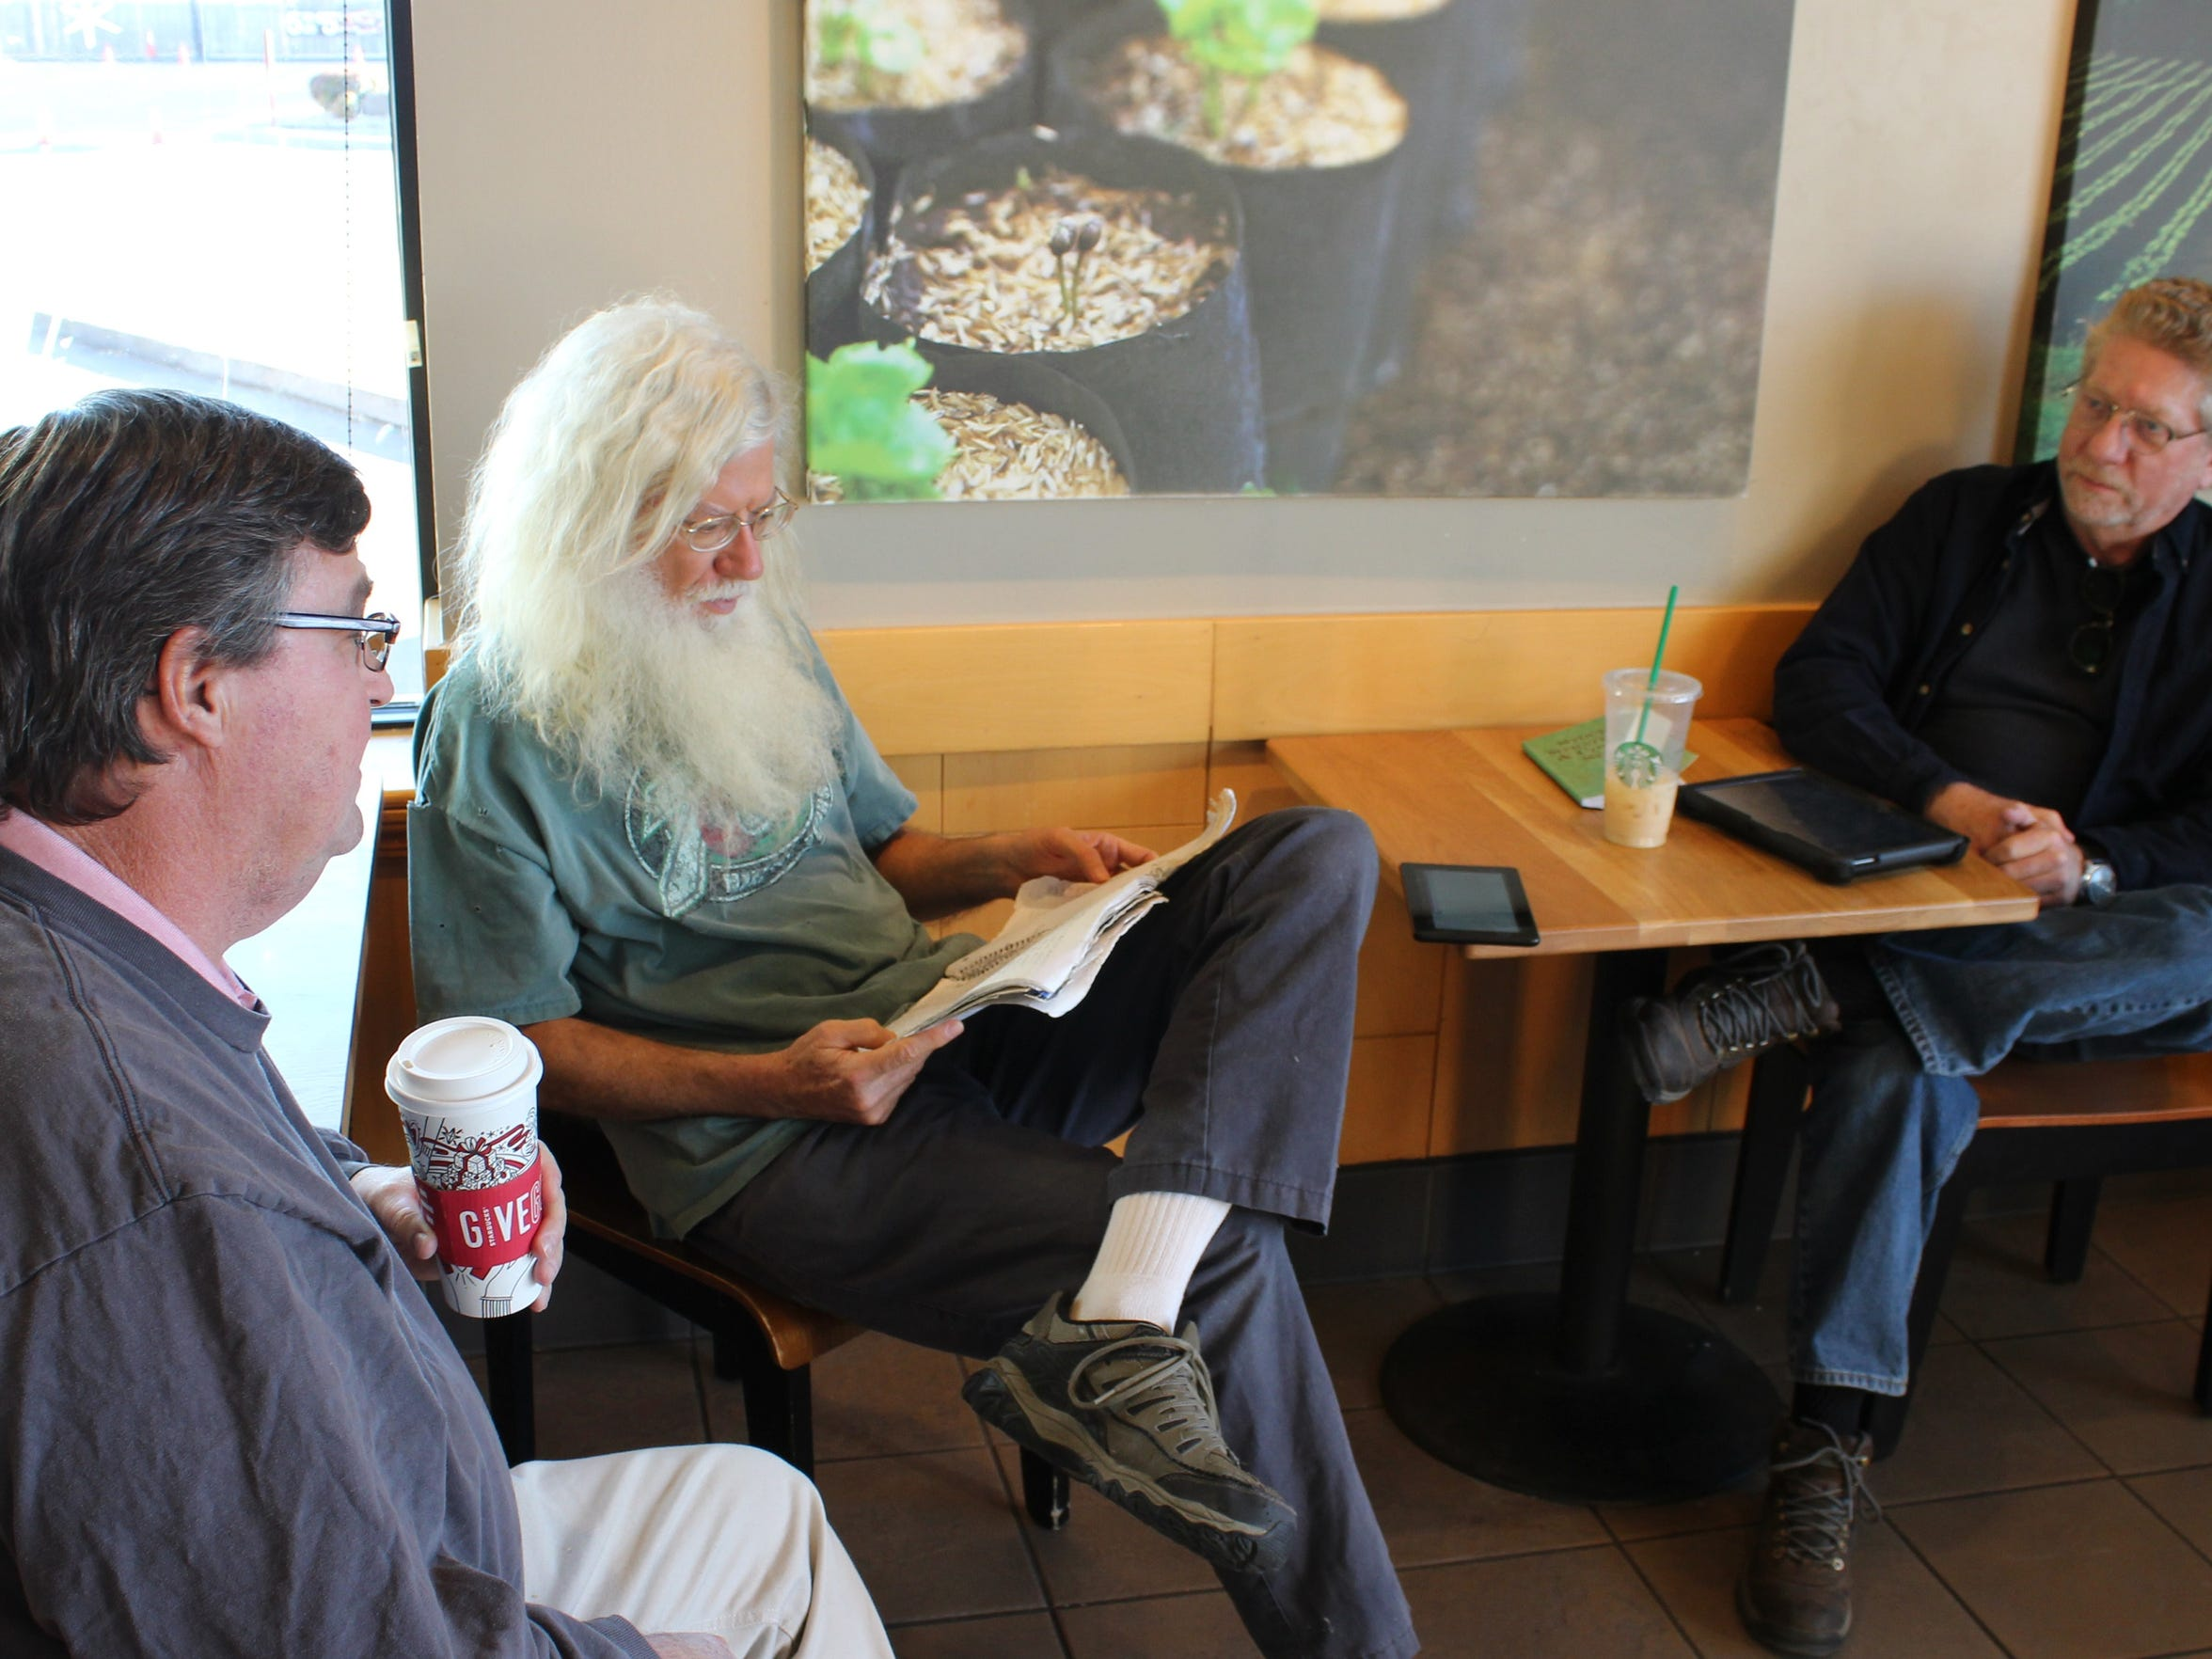 Rick Armstrong, left, and Gary Peterson, right, meet James Perkins at the Starbucks on South 14th Street to talk about what is going on in the stock market.